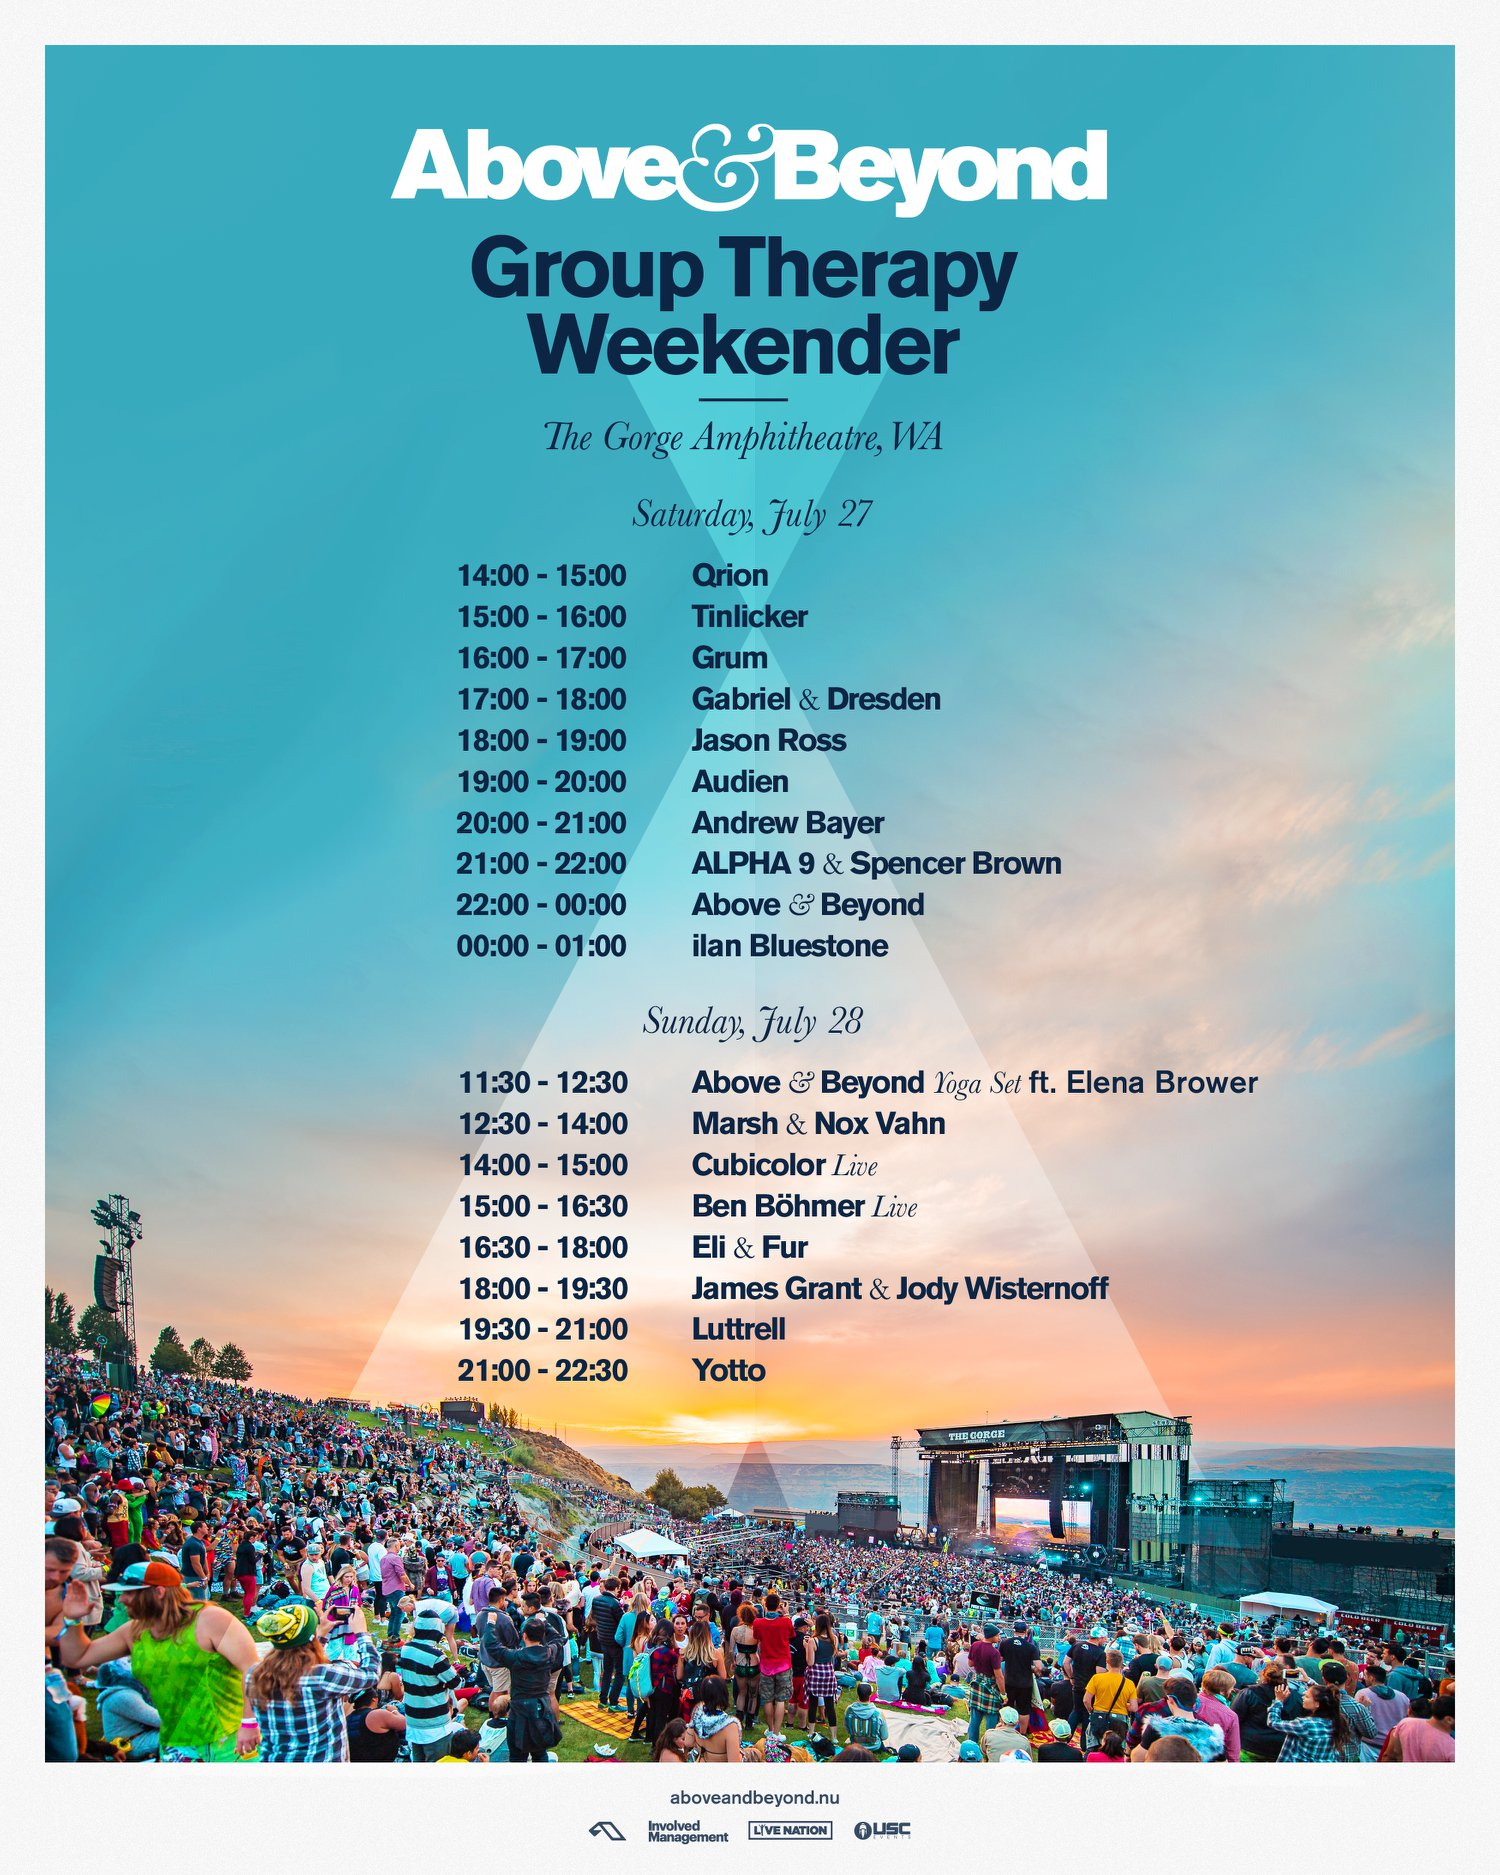 Group Therapy Weekender 2019 Set Times